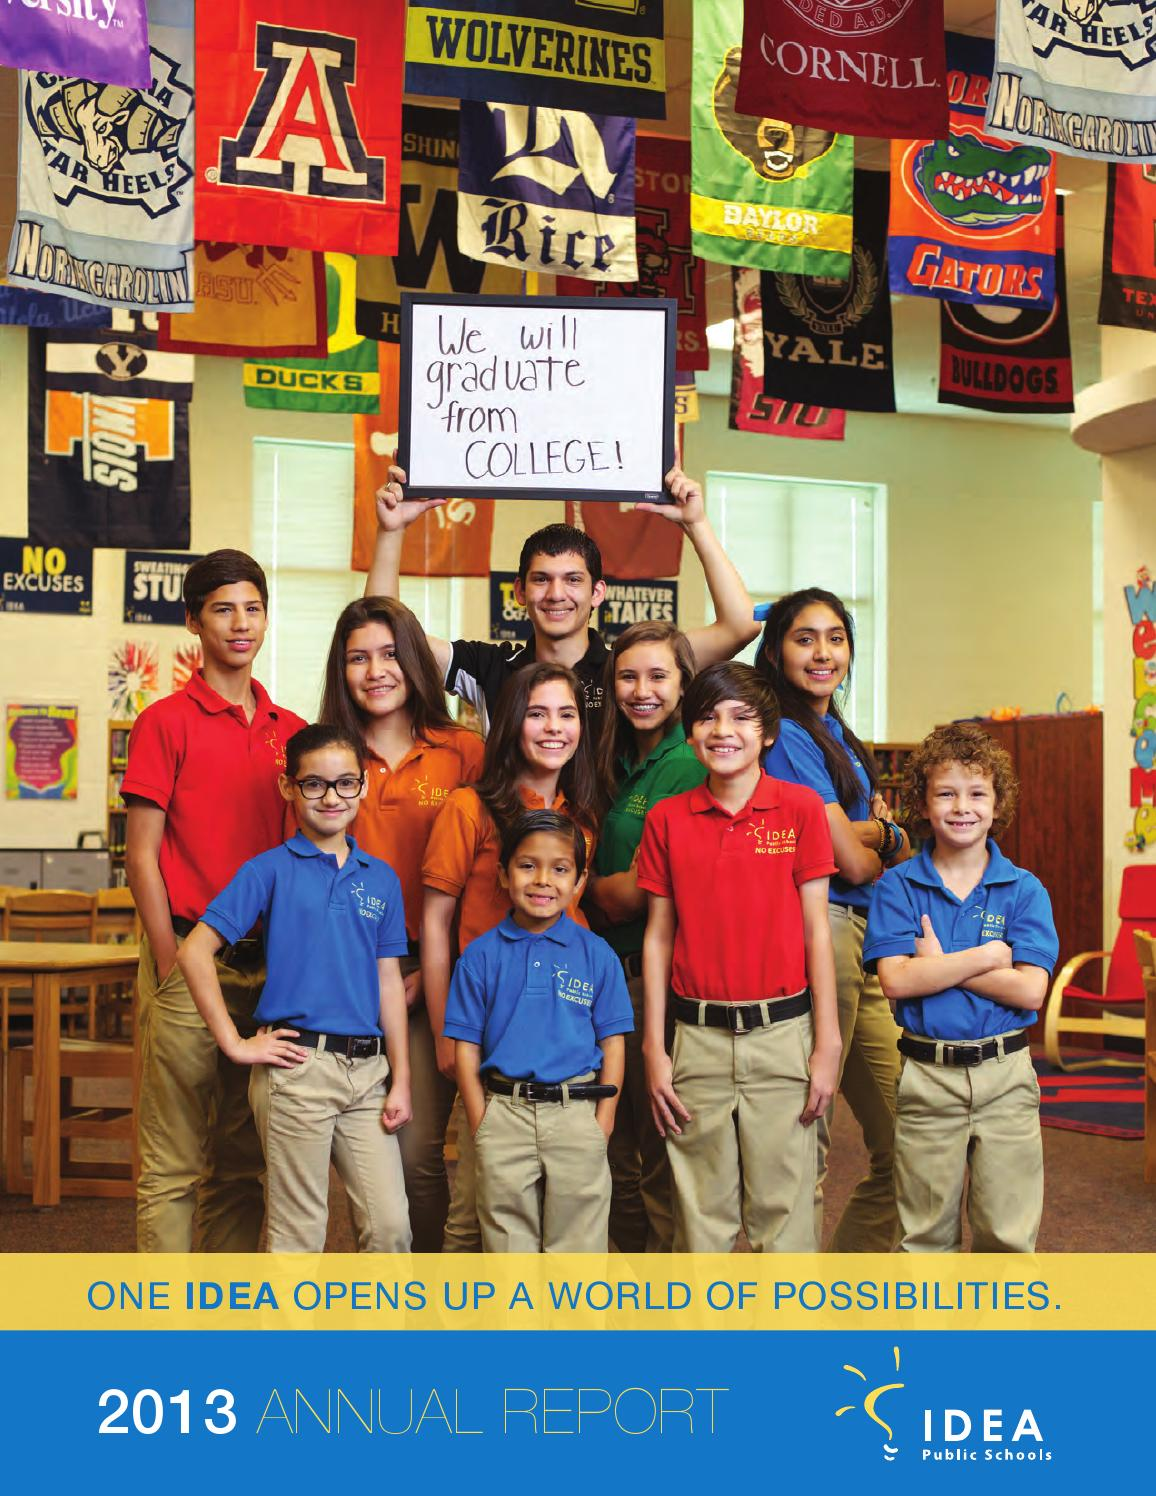 idea public schools 2013 annual report by soloshoe communications